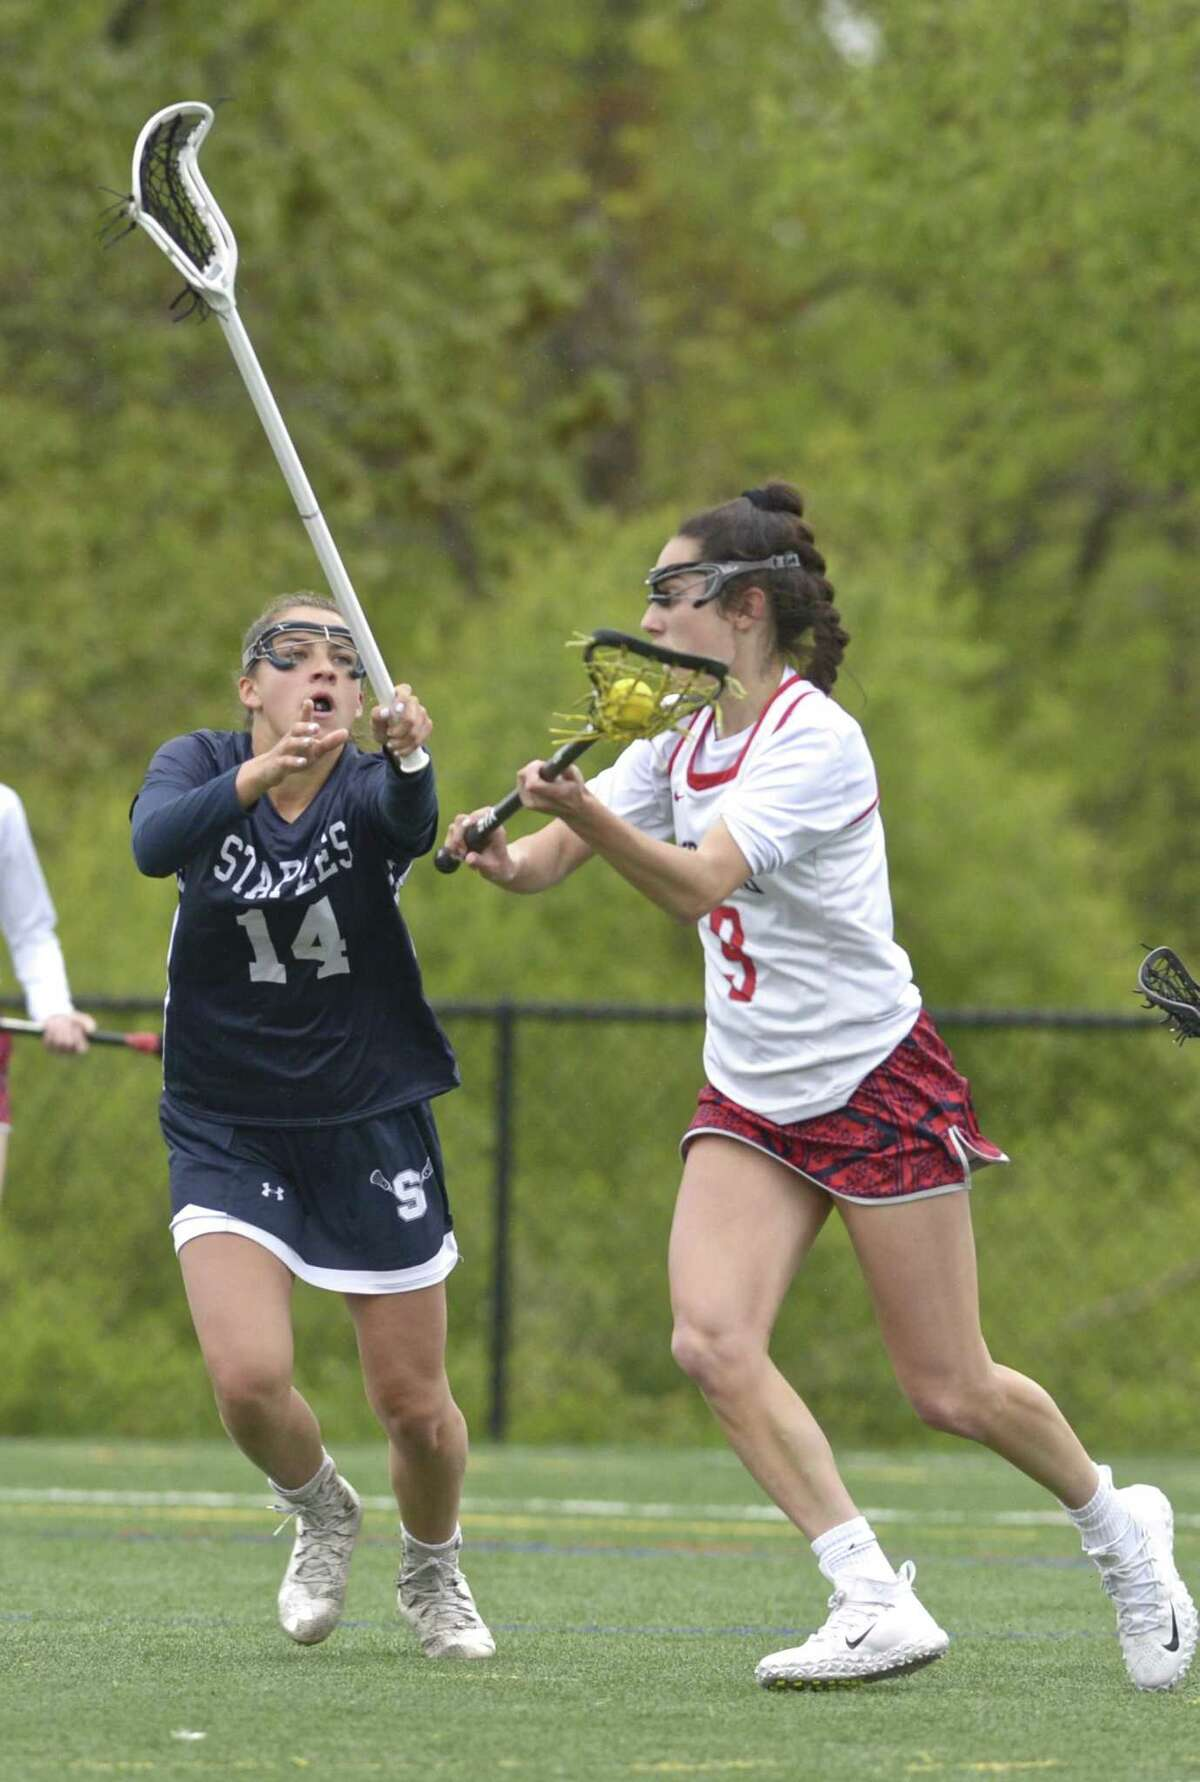 New Fairfield's Katelyn Sousa (9) moves to the goal while being defended by Staples Julia DiConza (14) in the girls lacrosse game between Staples and New Fairfield high schools, Tuesday May 14, 2019, at New Fairfield High School, New Fairfield, Conn.